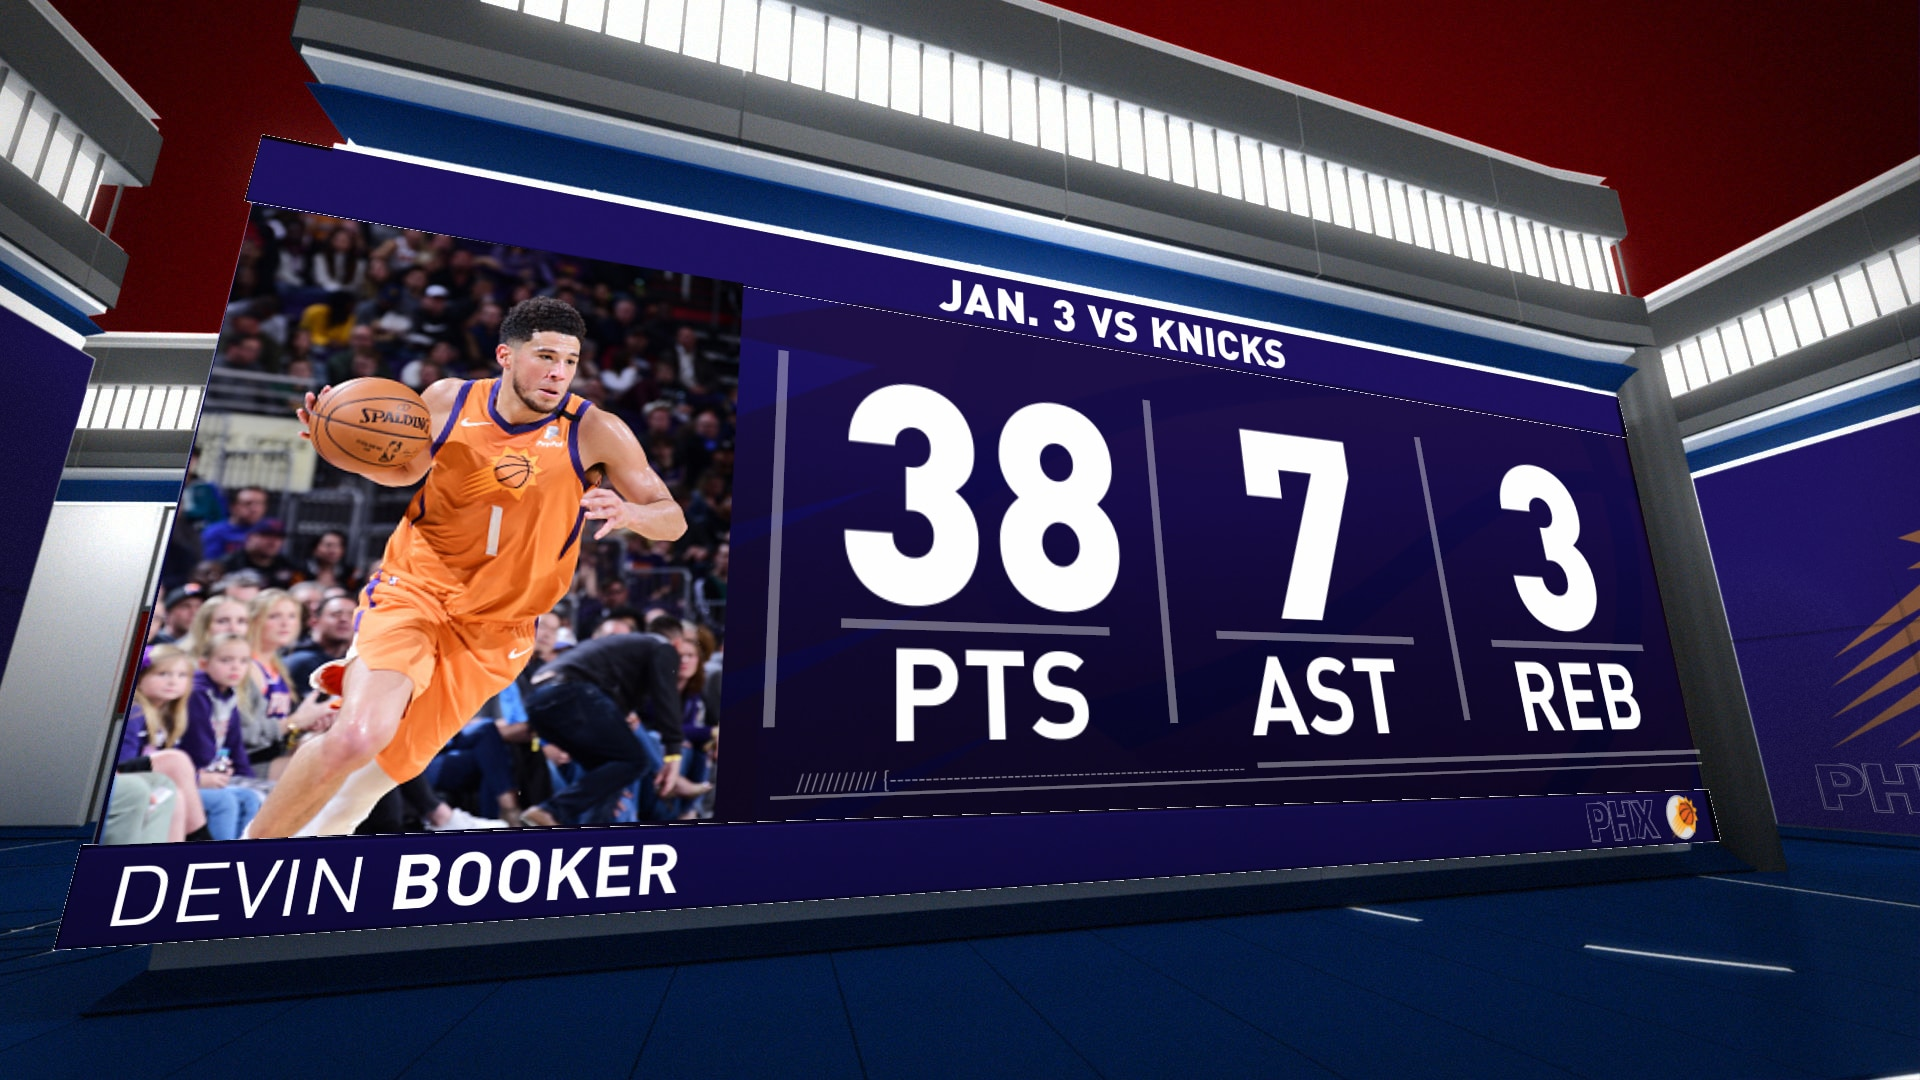 Highlights: Devin Booker | Suns vs. Knicks